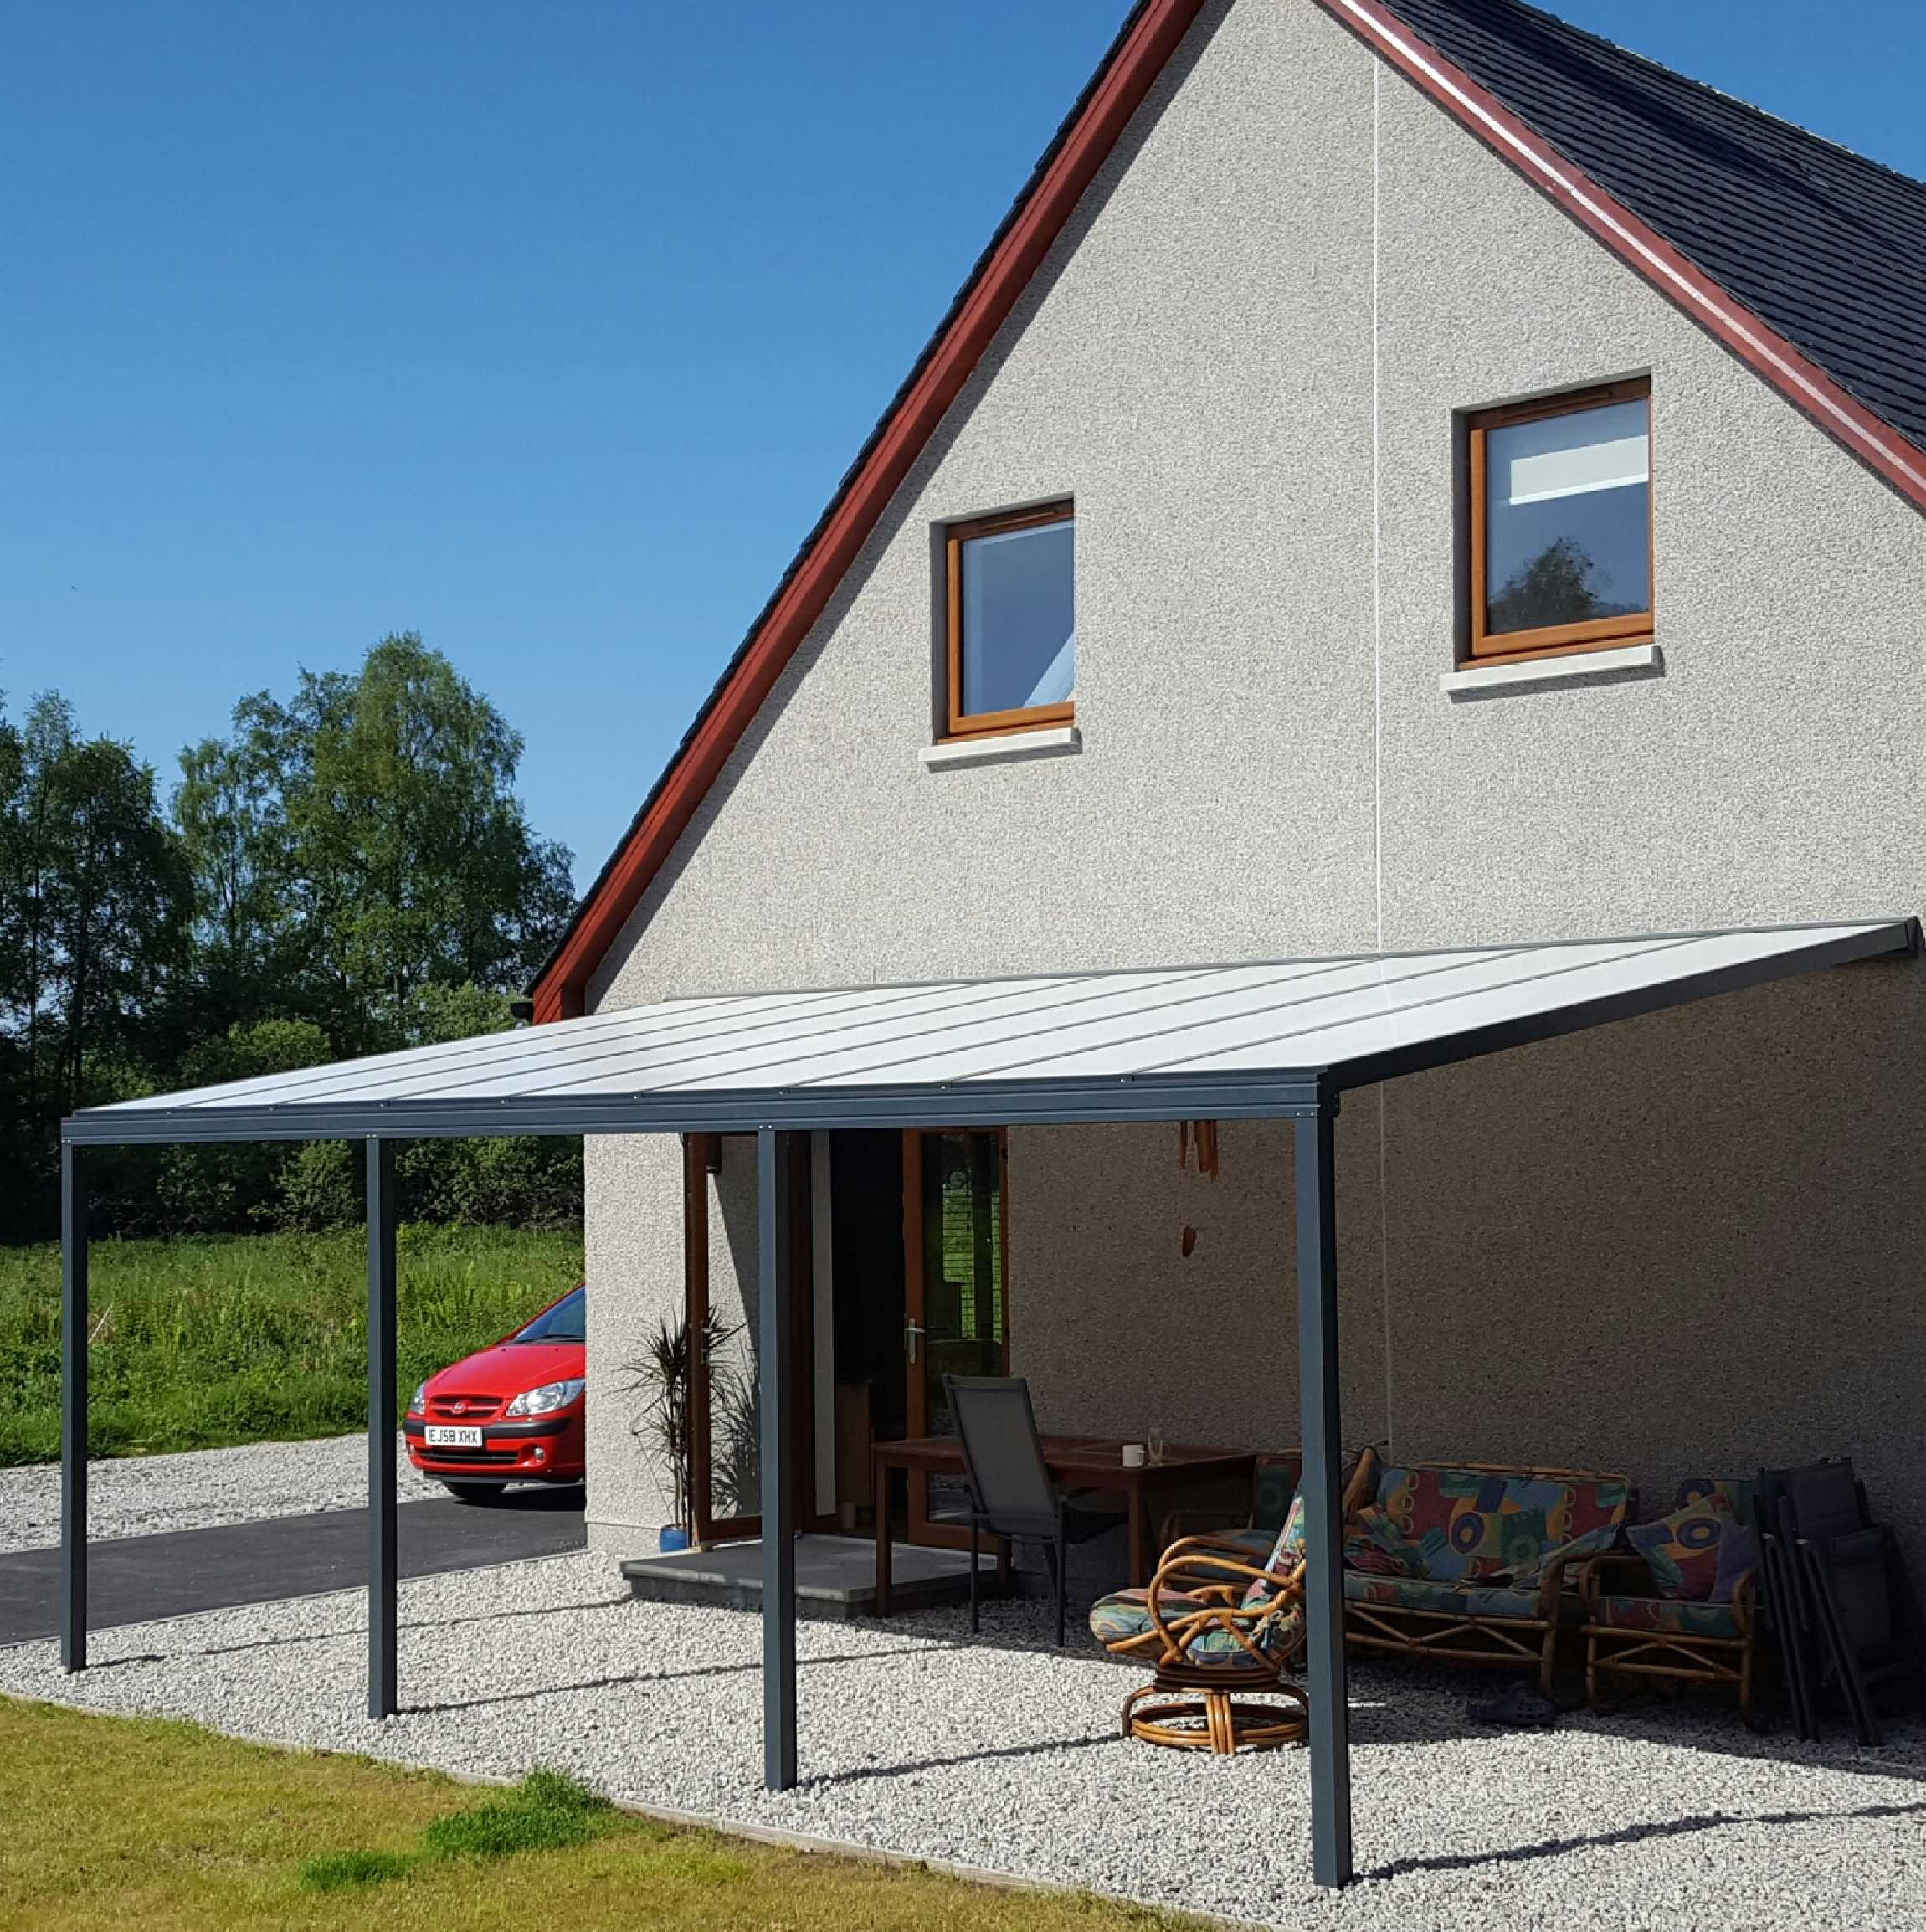 Great selection of Omega Smart Lean-To Canopy, Anthracite Grey, 16mm Polycarbonate Glazing - 8.4m (W) x 4.5m (P), (4) Supporting Posts